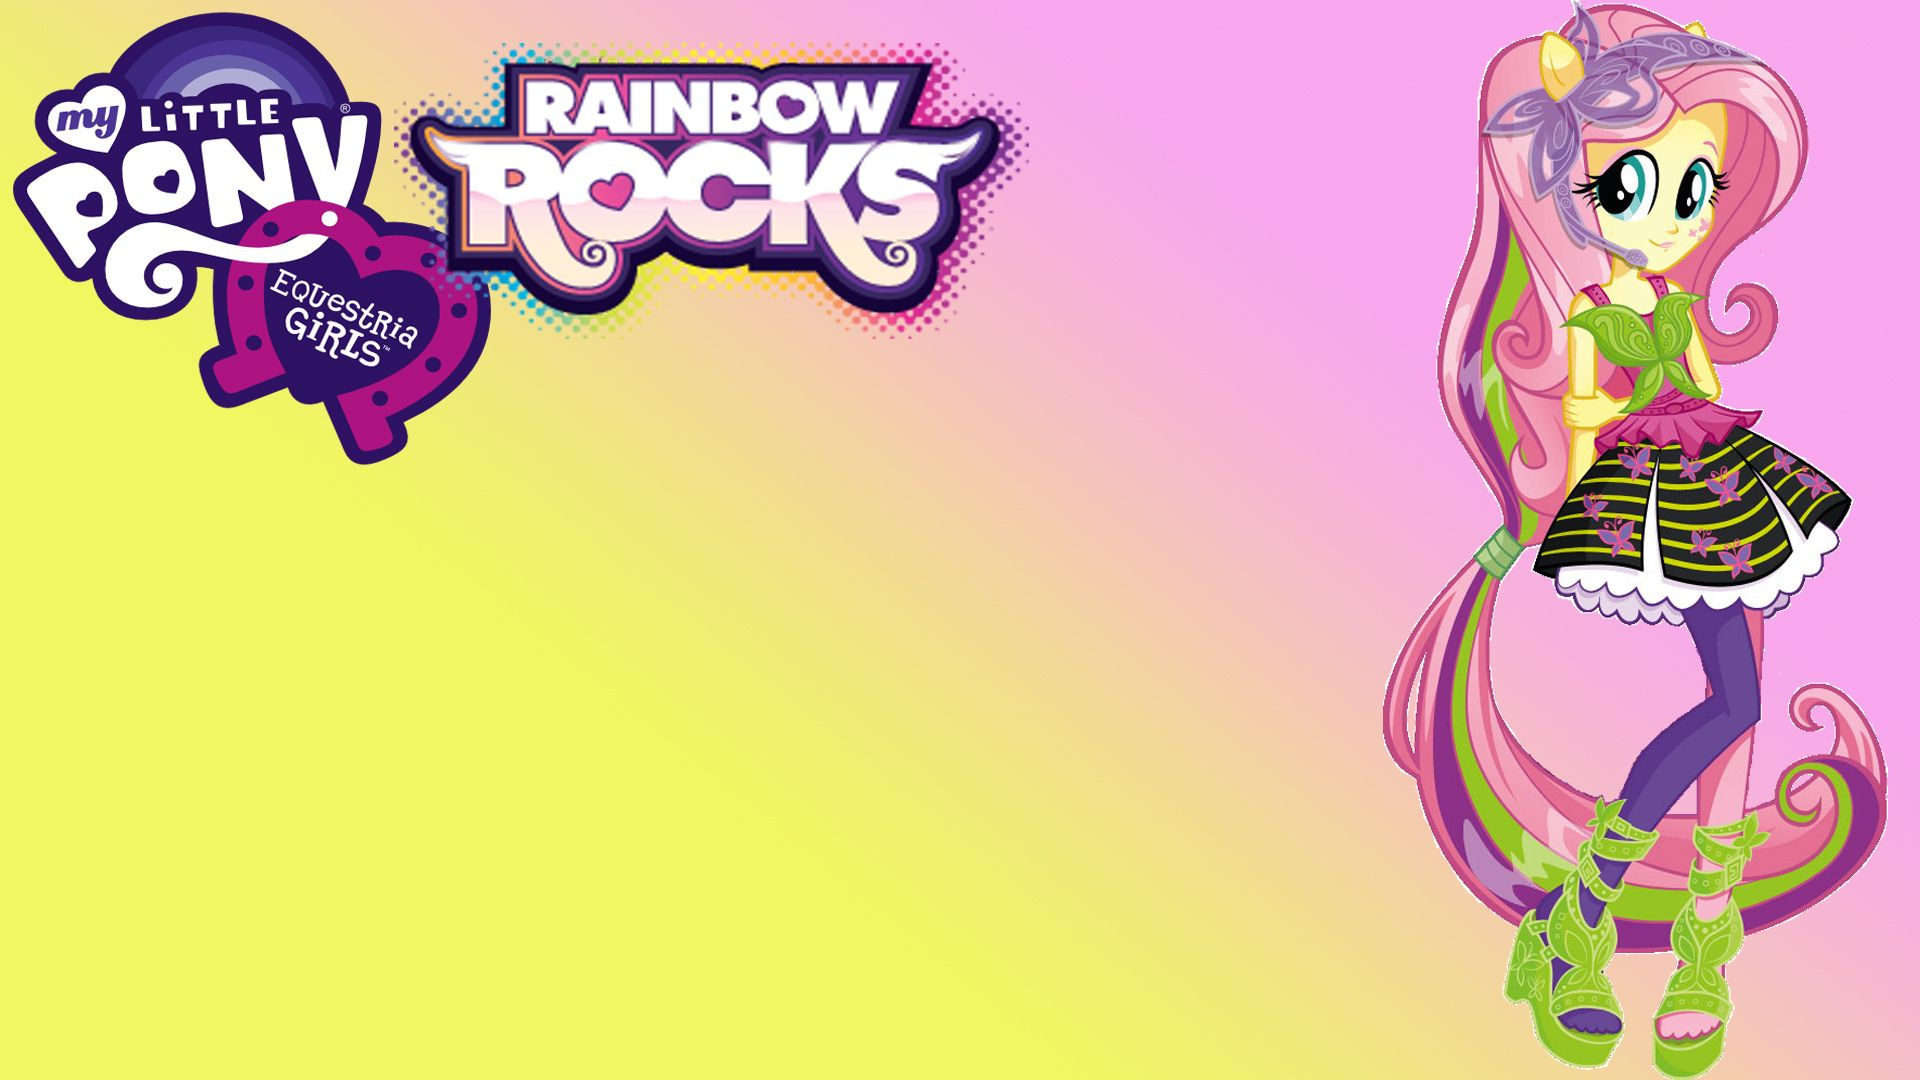 Equestria Girls Rainbow Rocks Fluttershy Wallpaper By Fluttershy70